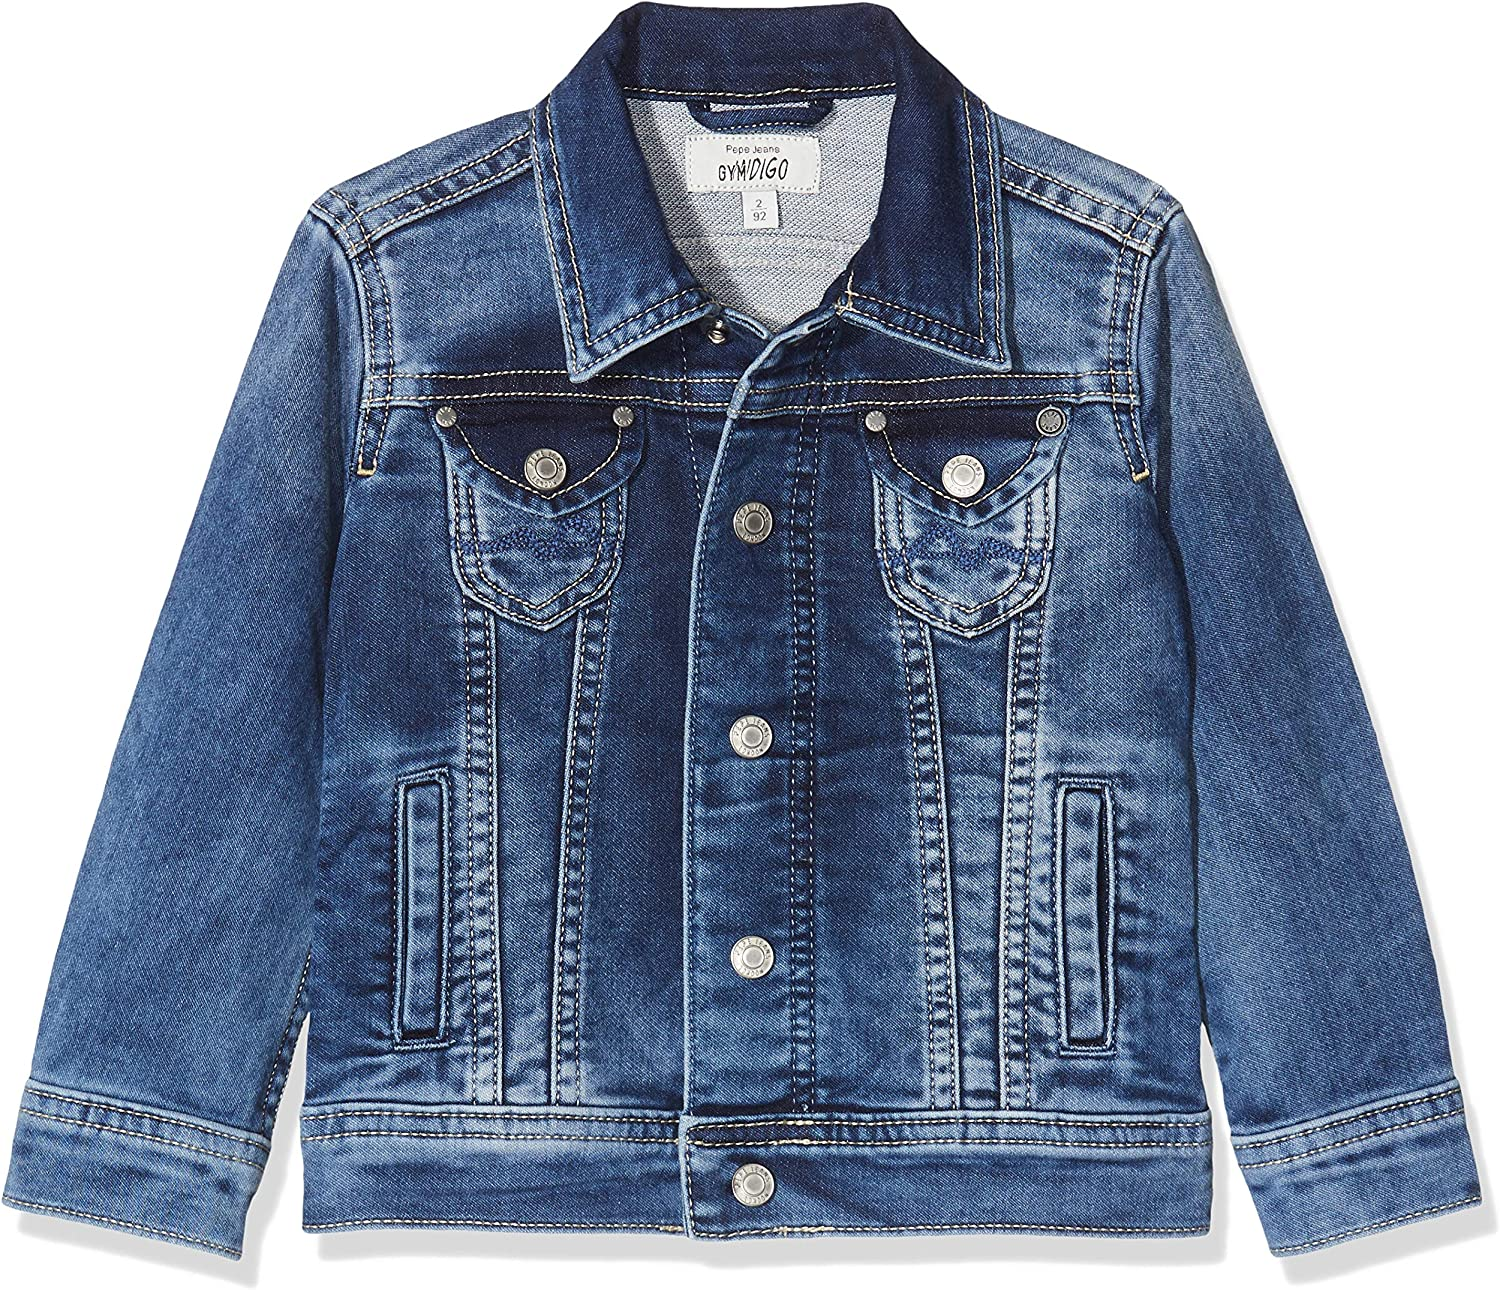 Pepe Jeans New Berry Giacca Bambina